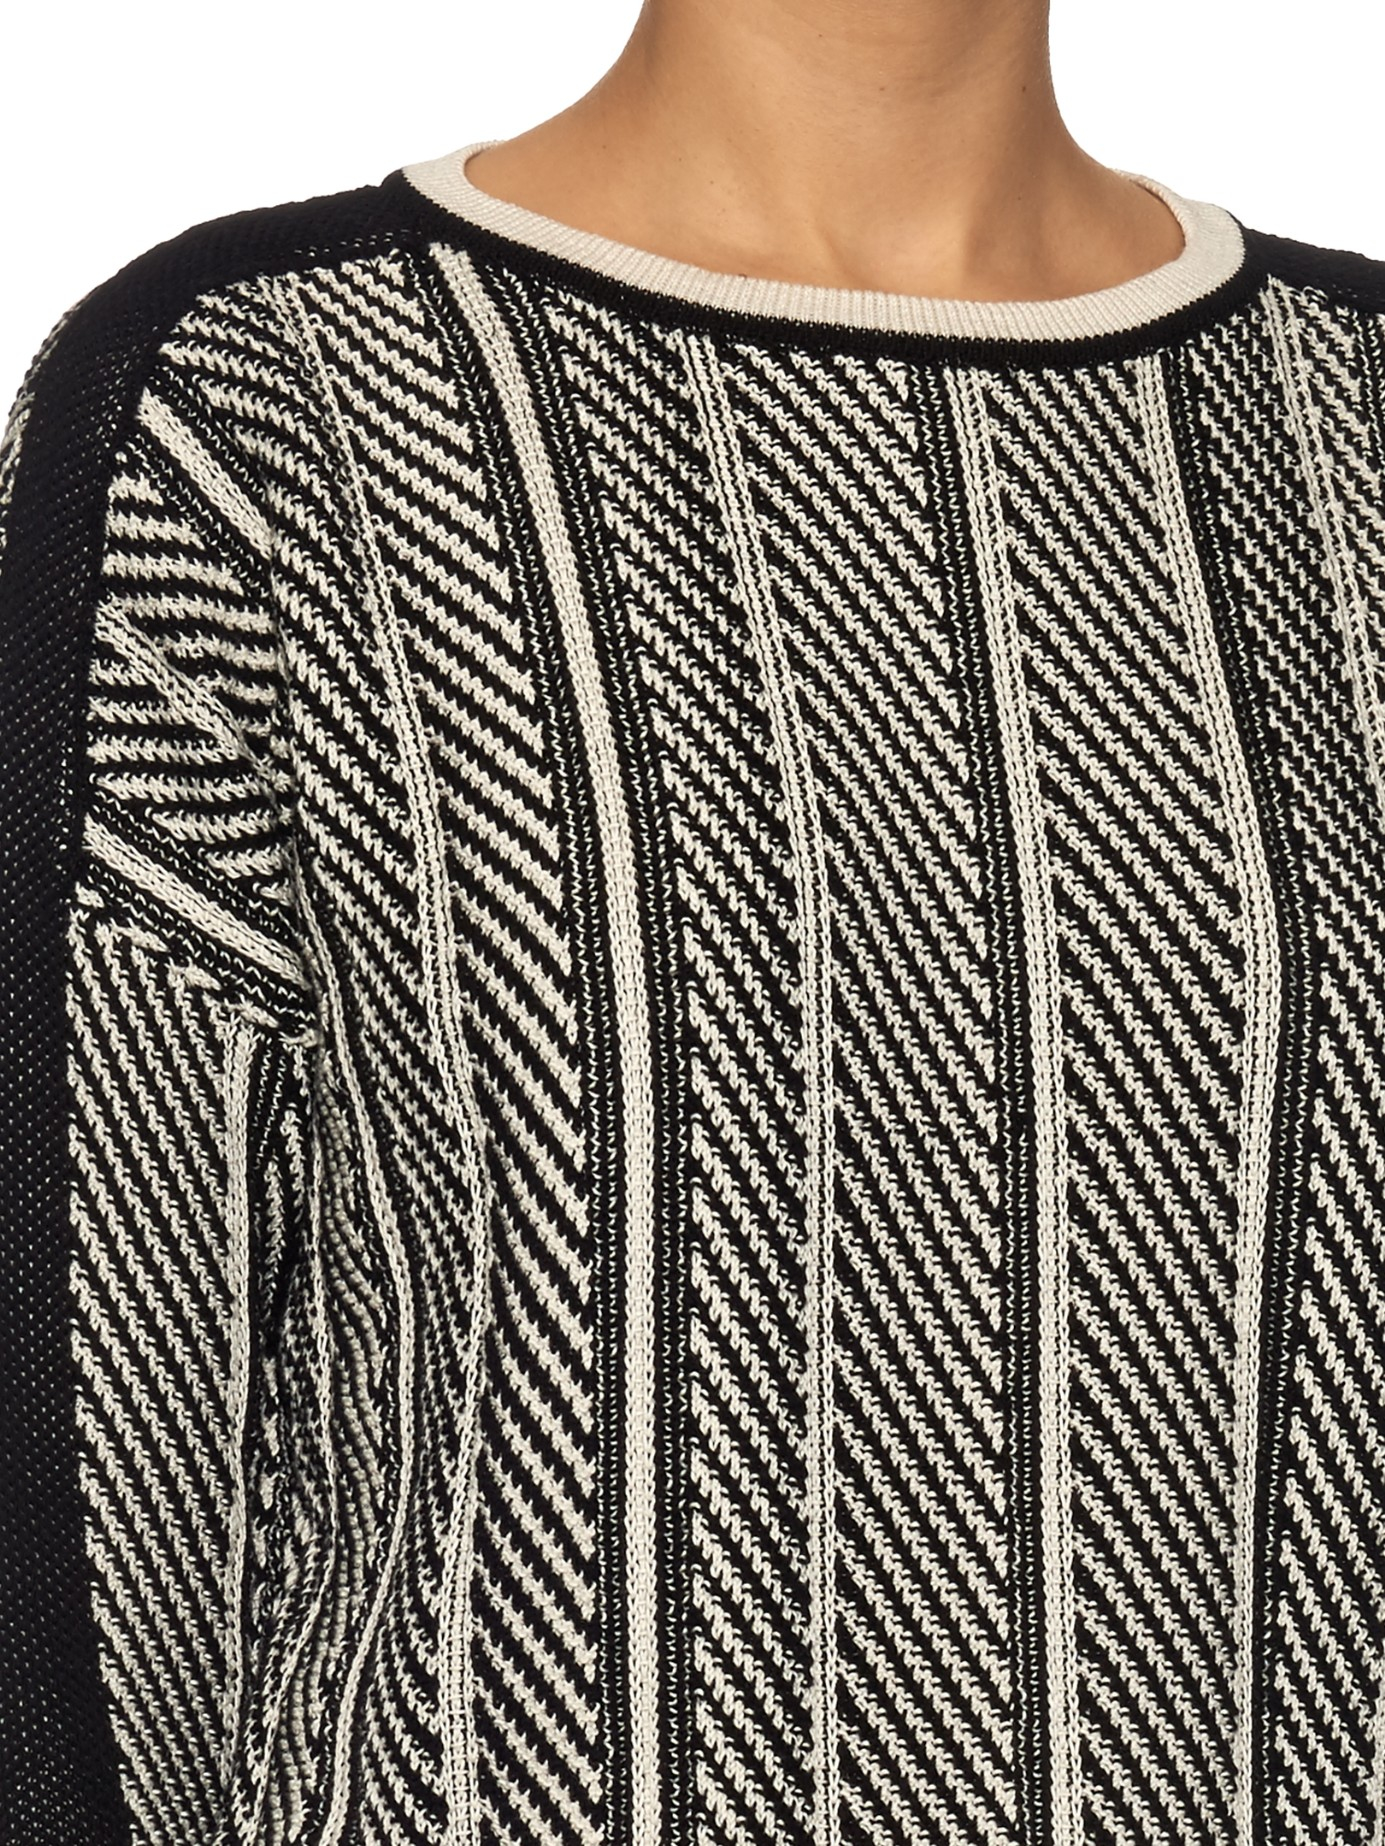 Weekend by Maxmara Cotton Armanda Sweater in Black White (Black)